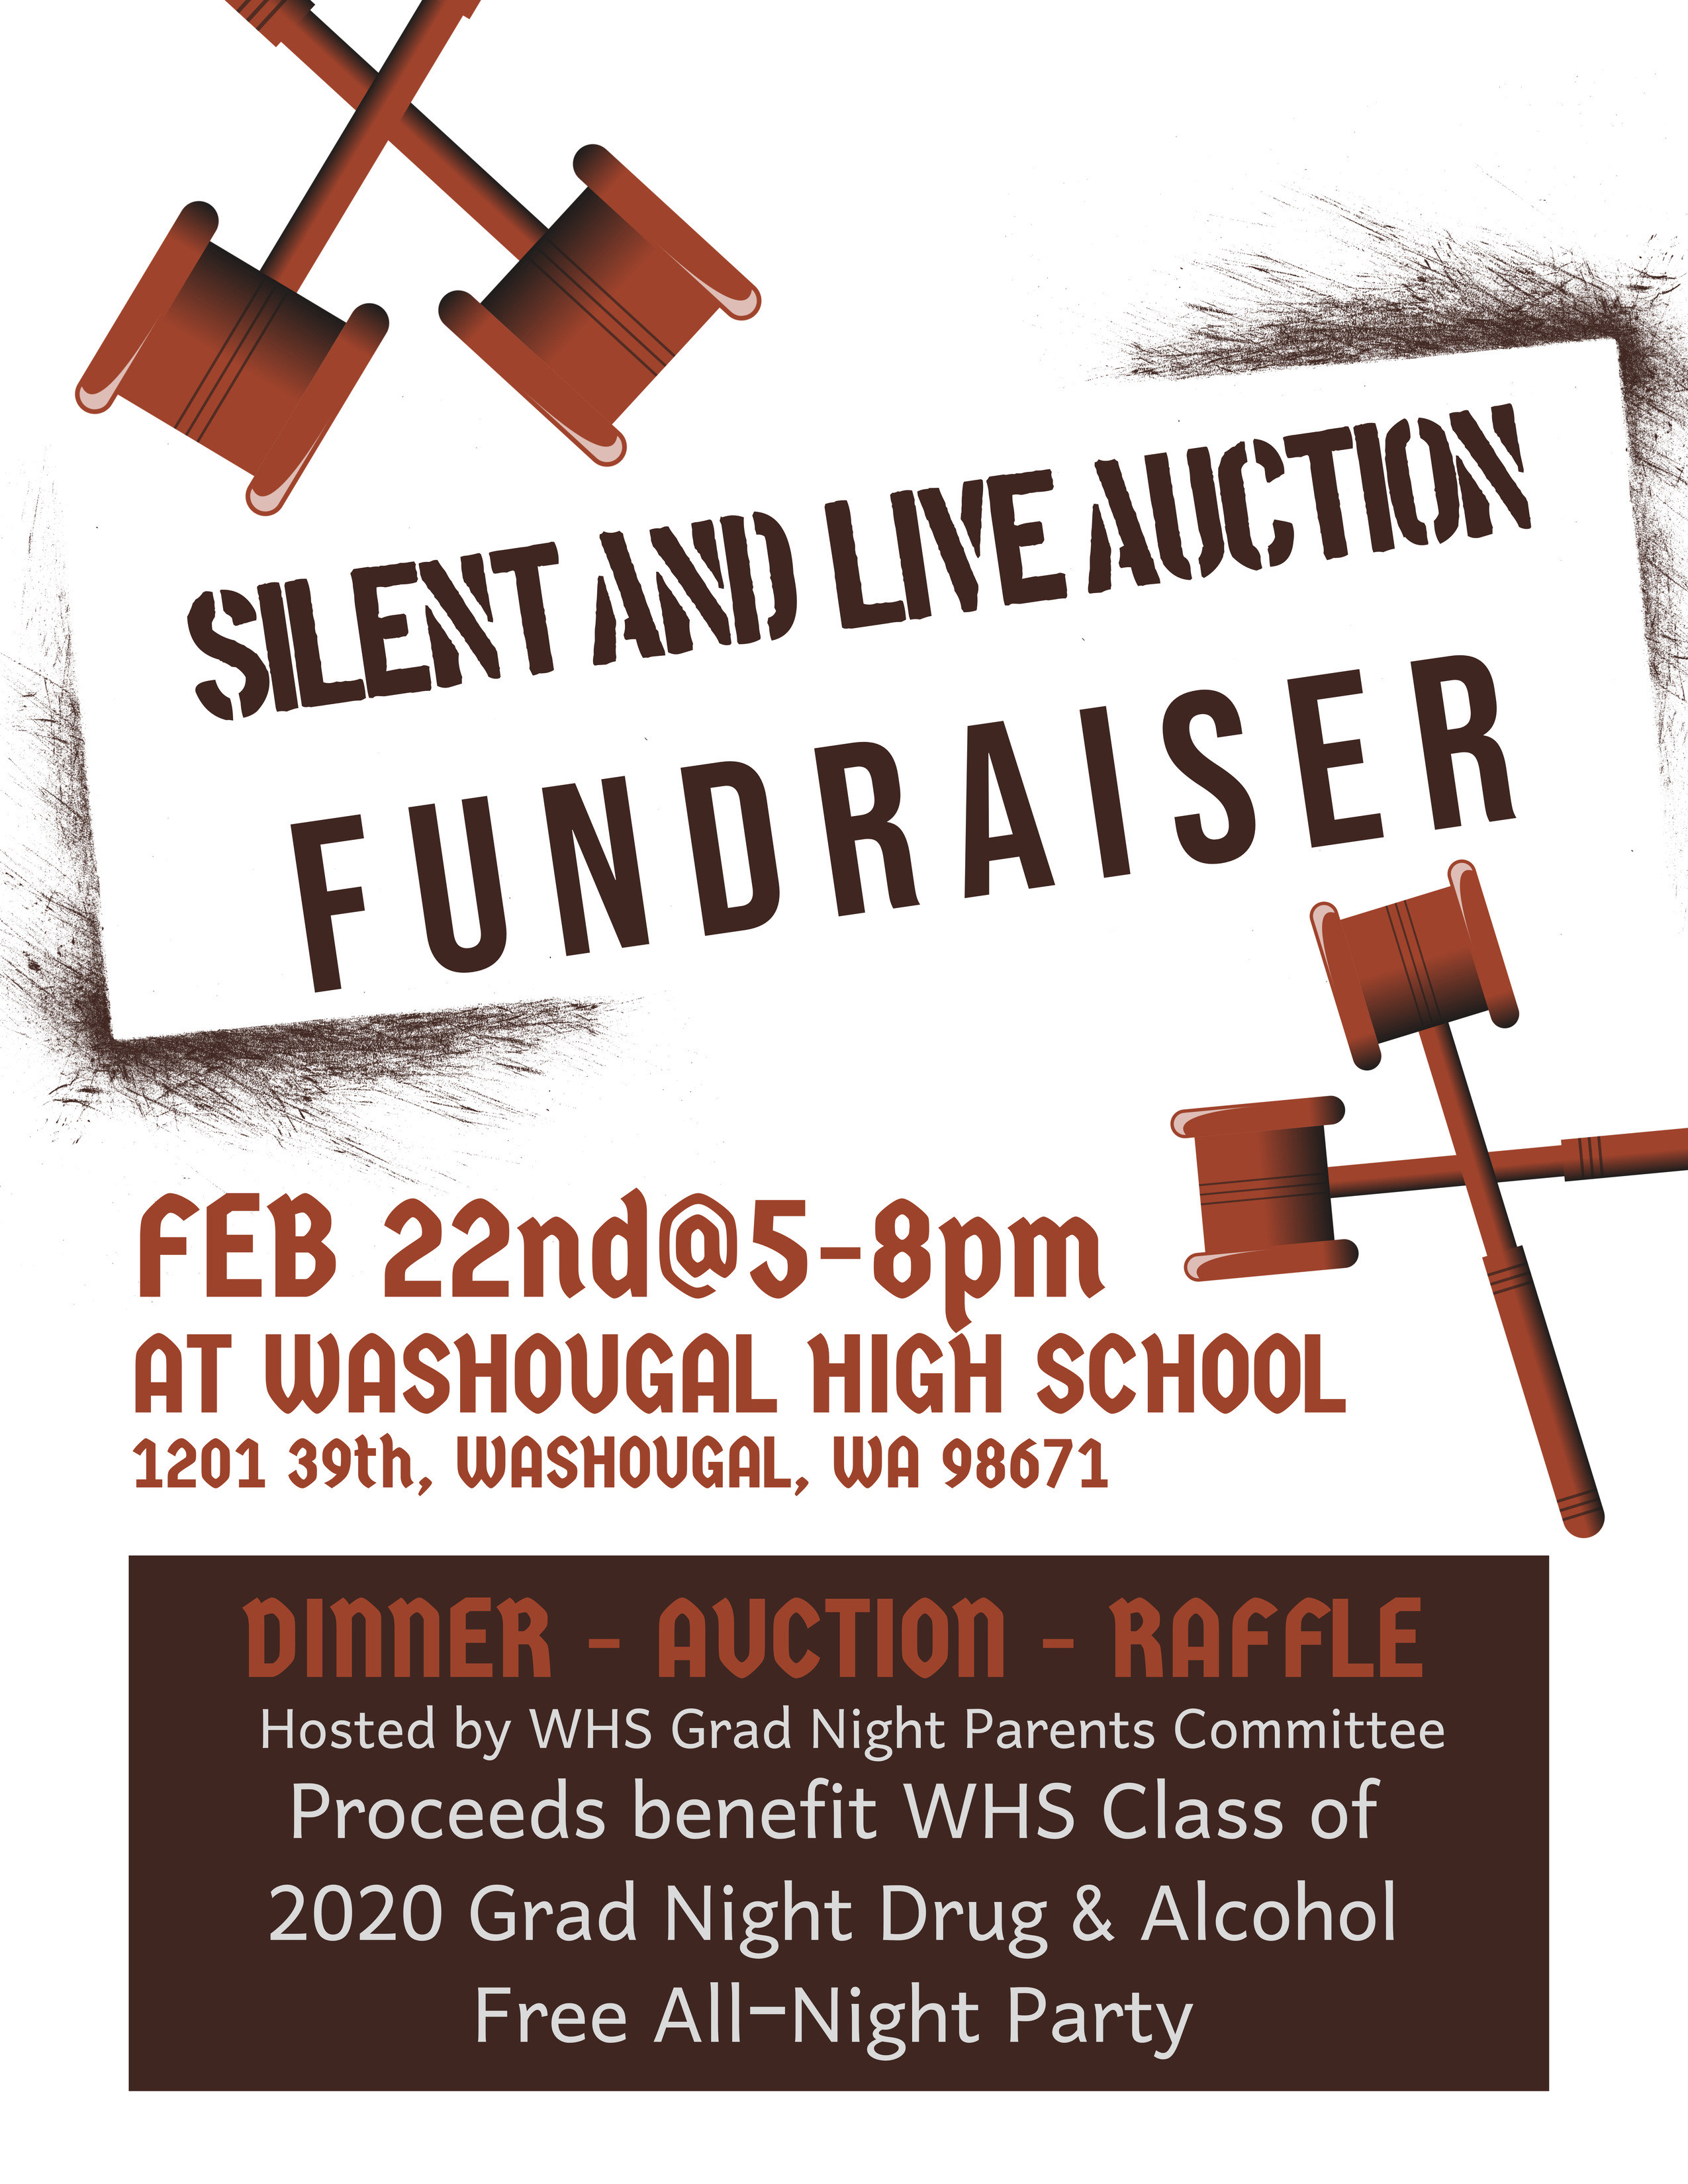 Silent and Live Auction Fundraiser